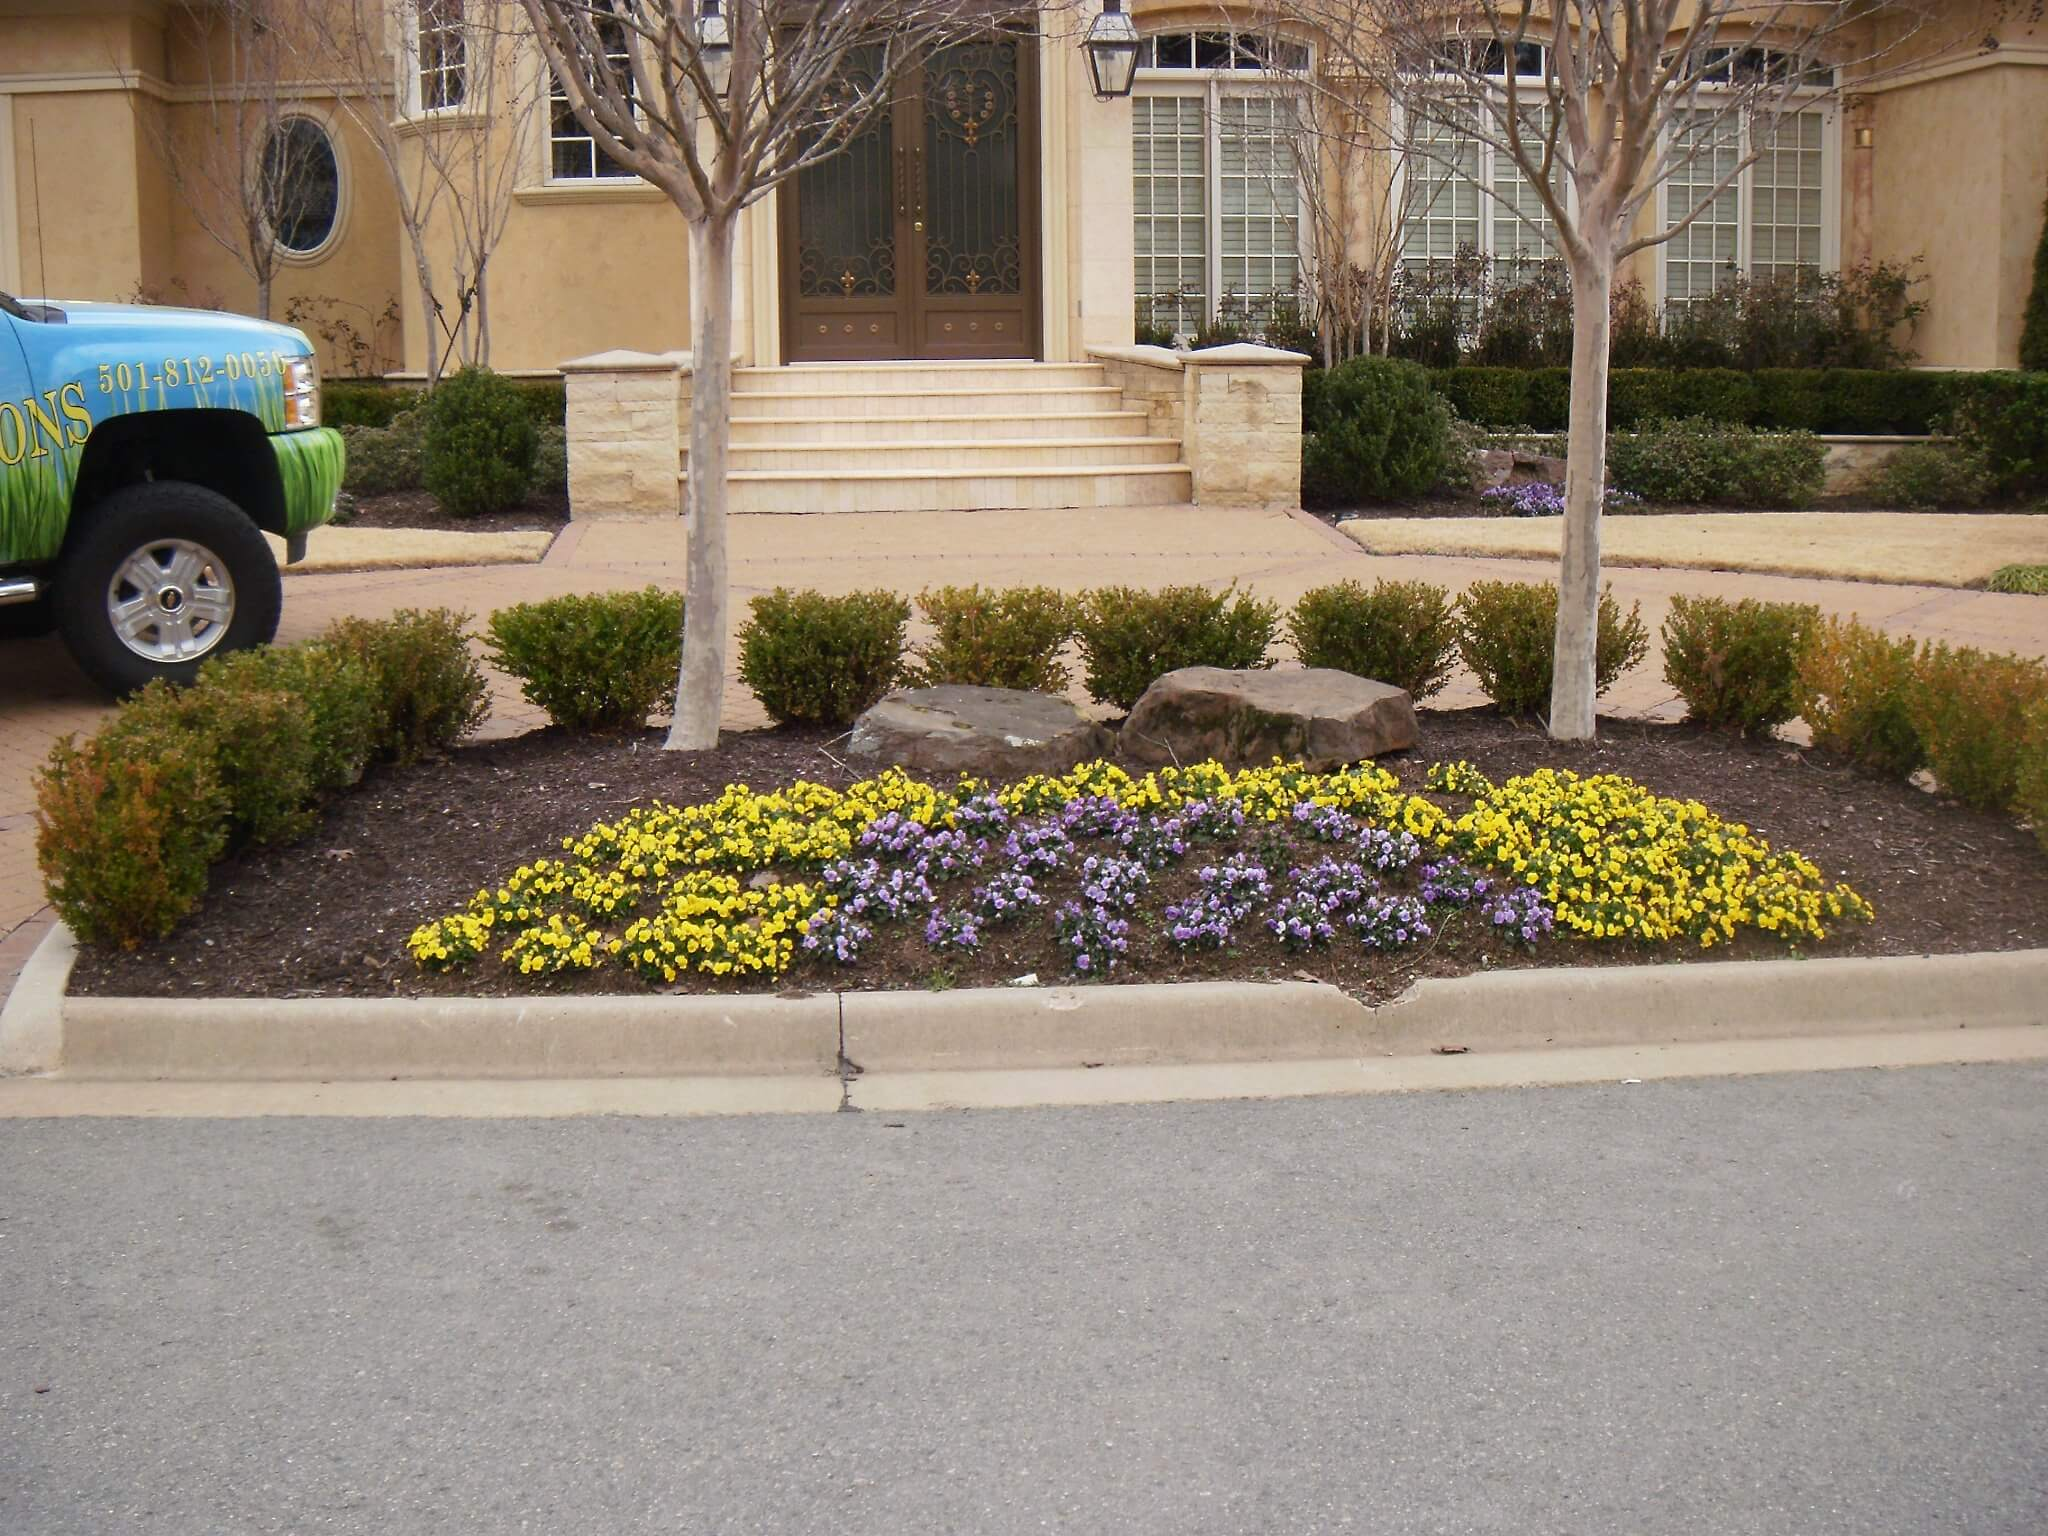 Monthly Lawn Care Services & Seasonal Design Solutions